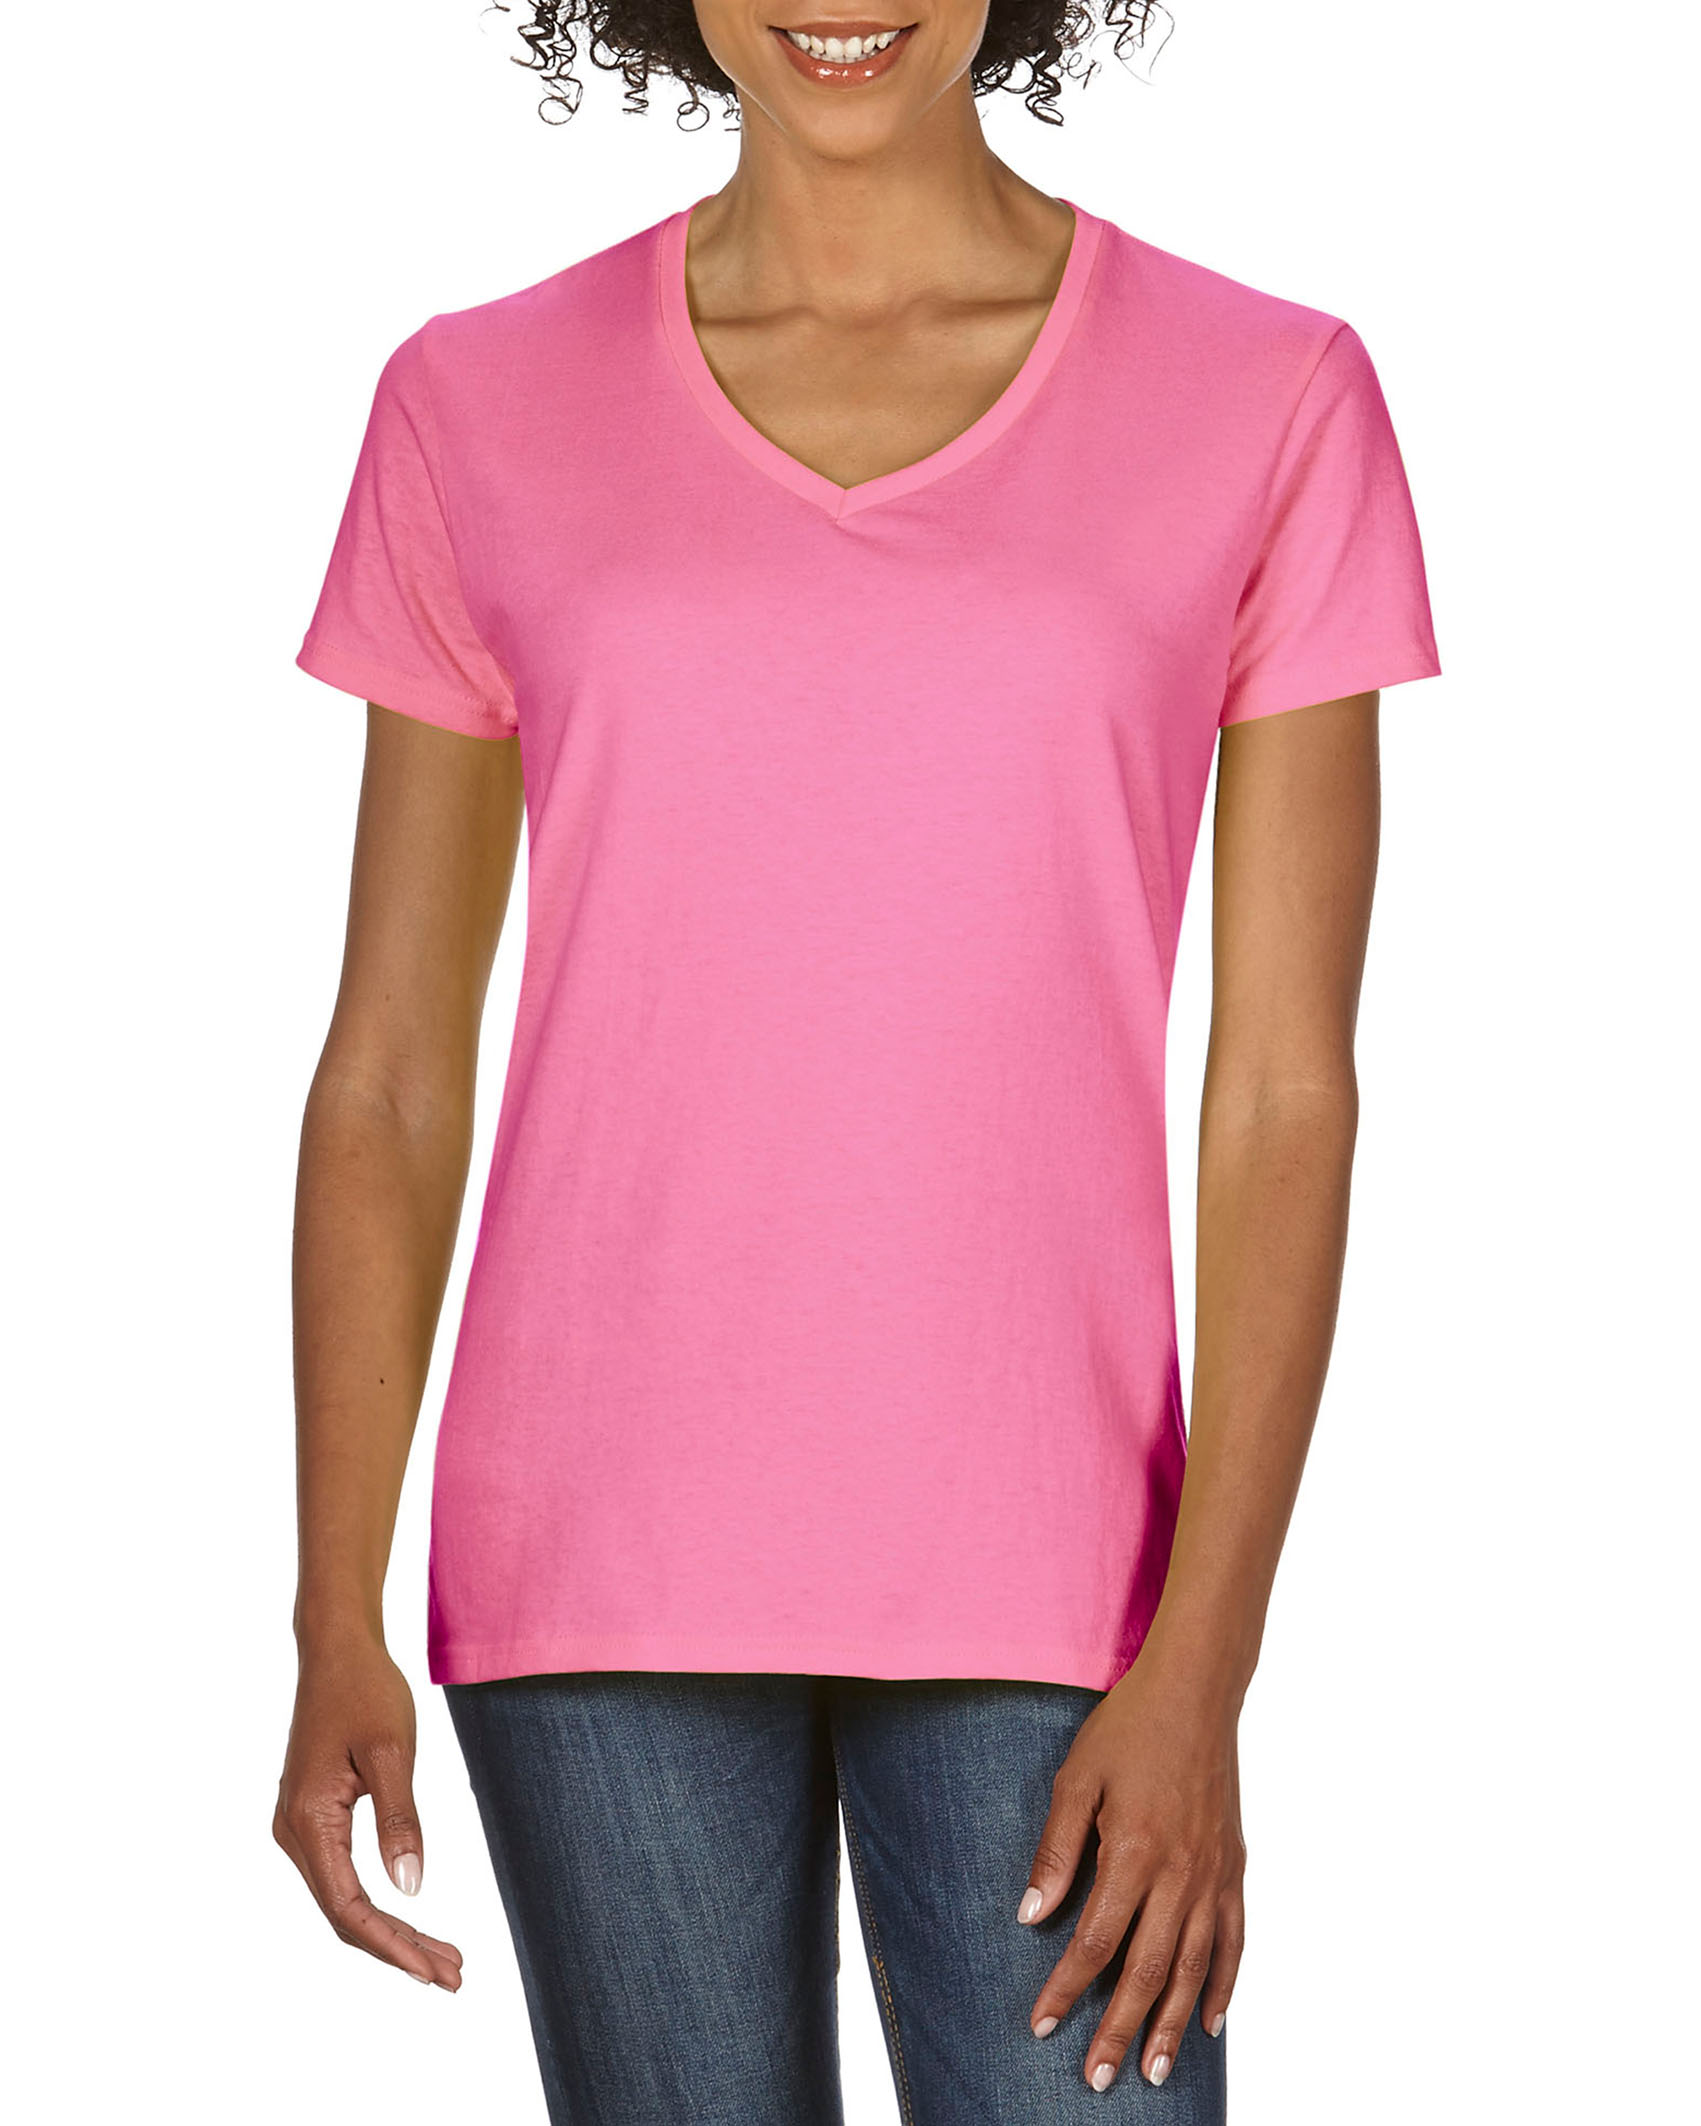 Gildan T-shirt Premium Cotton V-neck for her